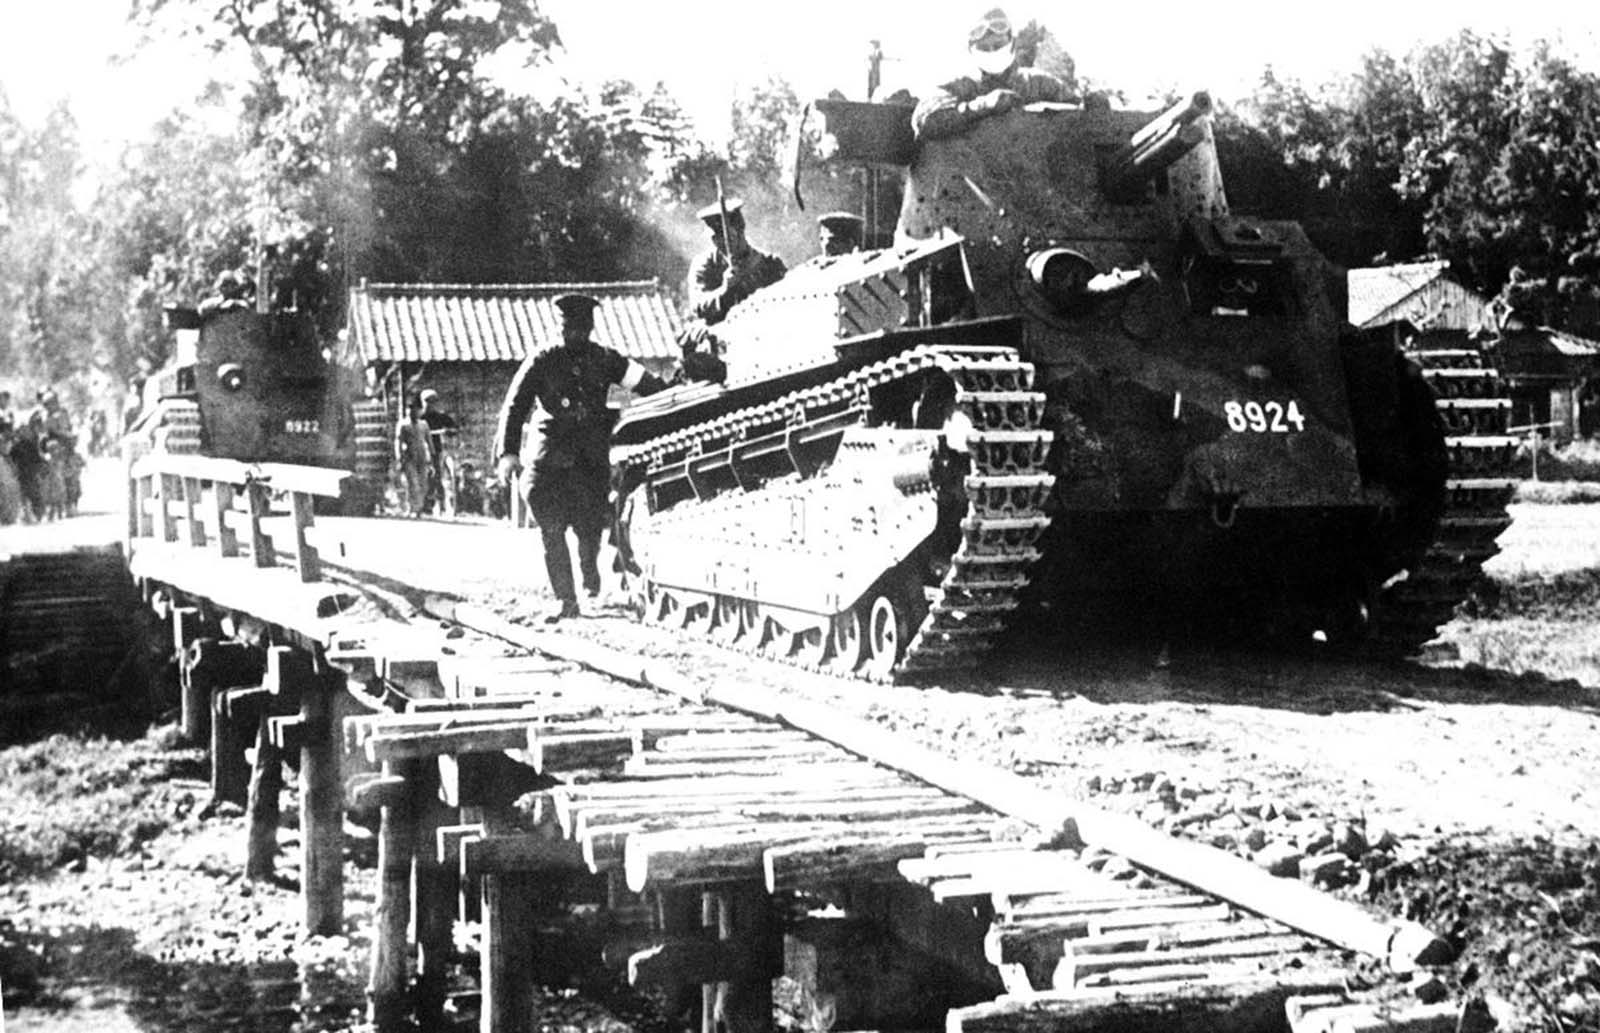 A Japanese tank passes over an emergency bridge, somewhere in China, on June 30, 1941.